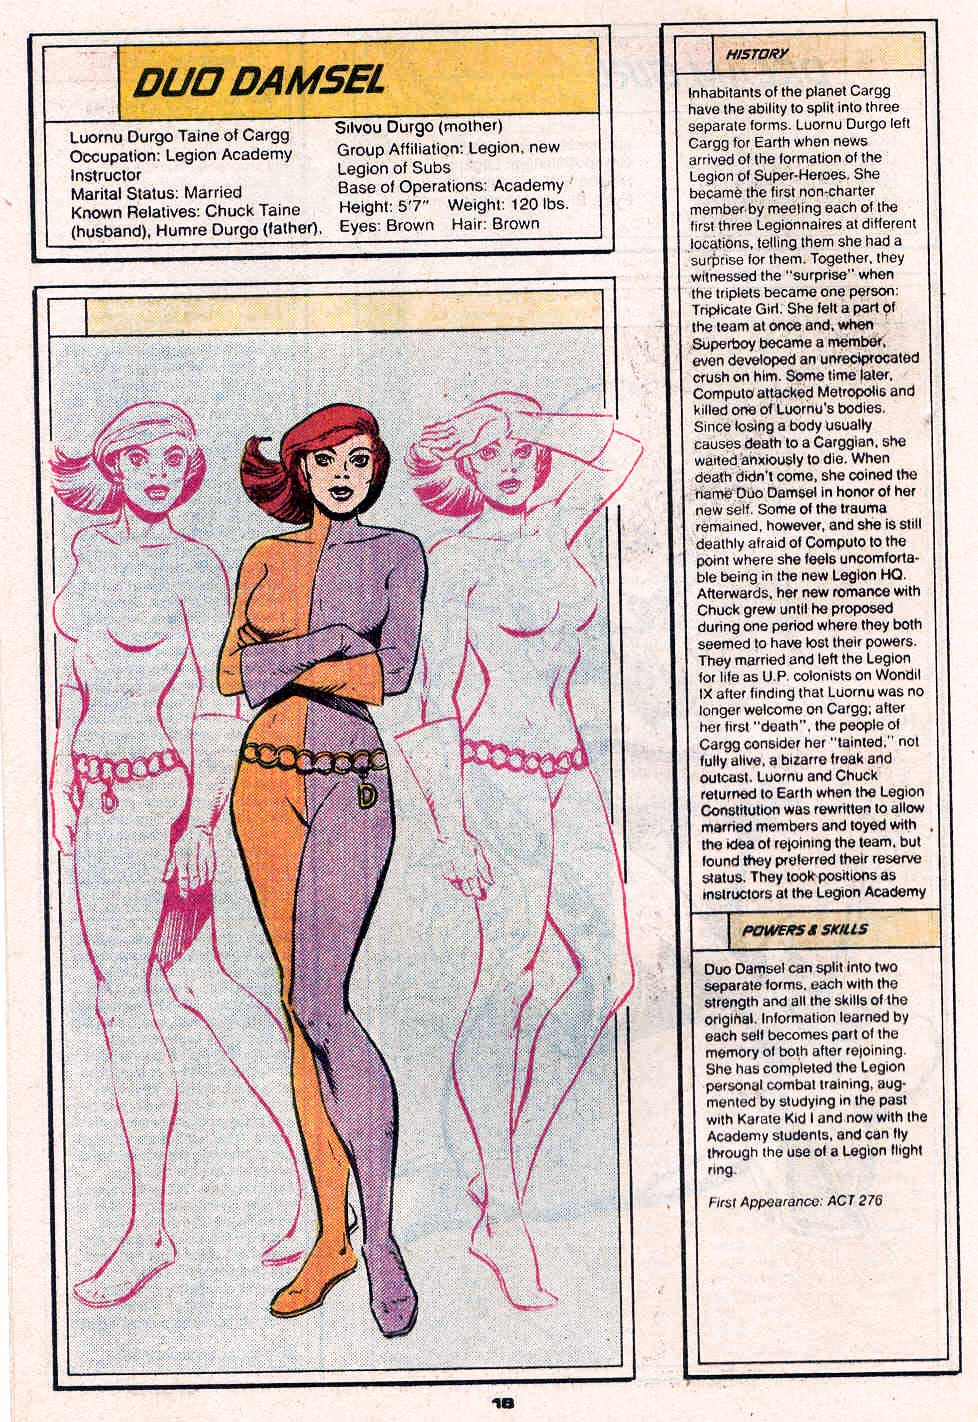 Duo Damsel by Dave Cockrum - Who's Who in the Legion of Super-Heroes #2